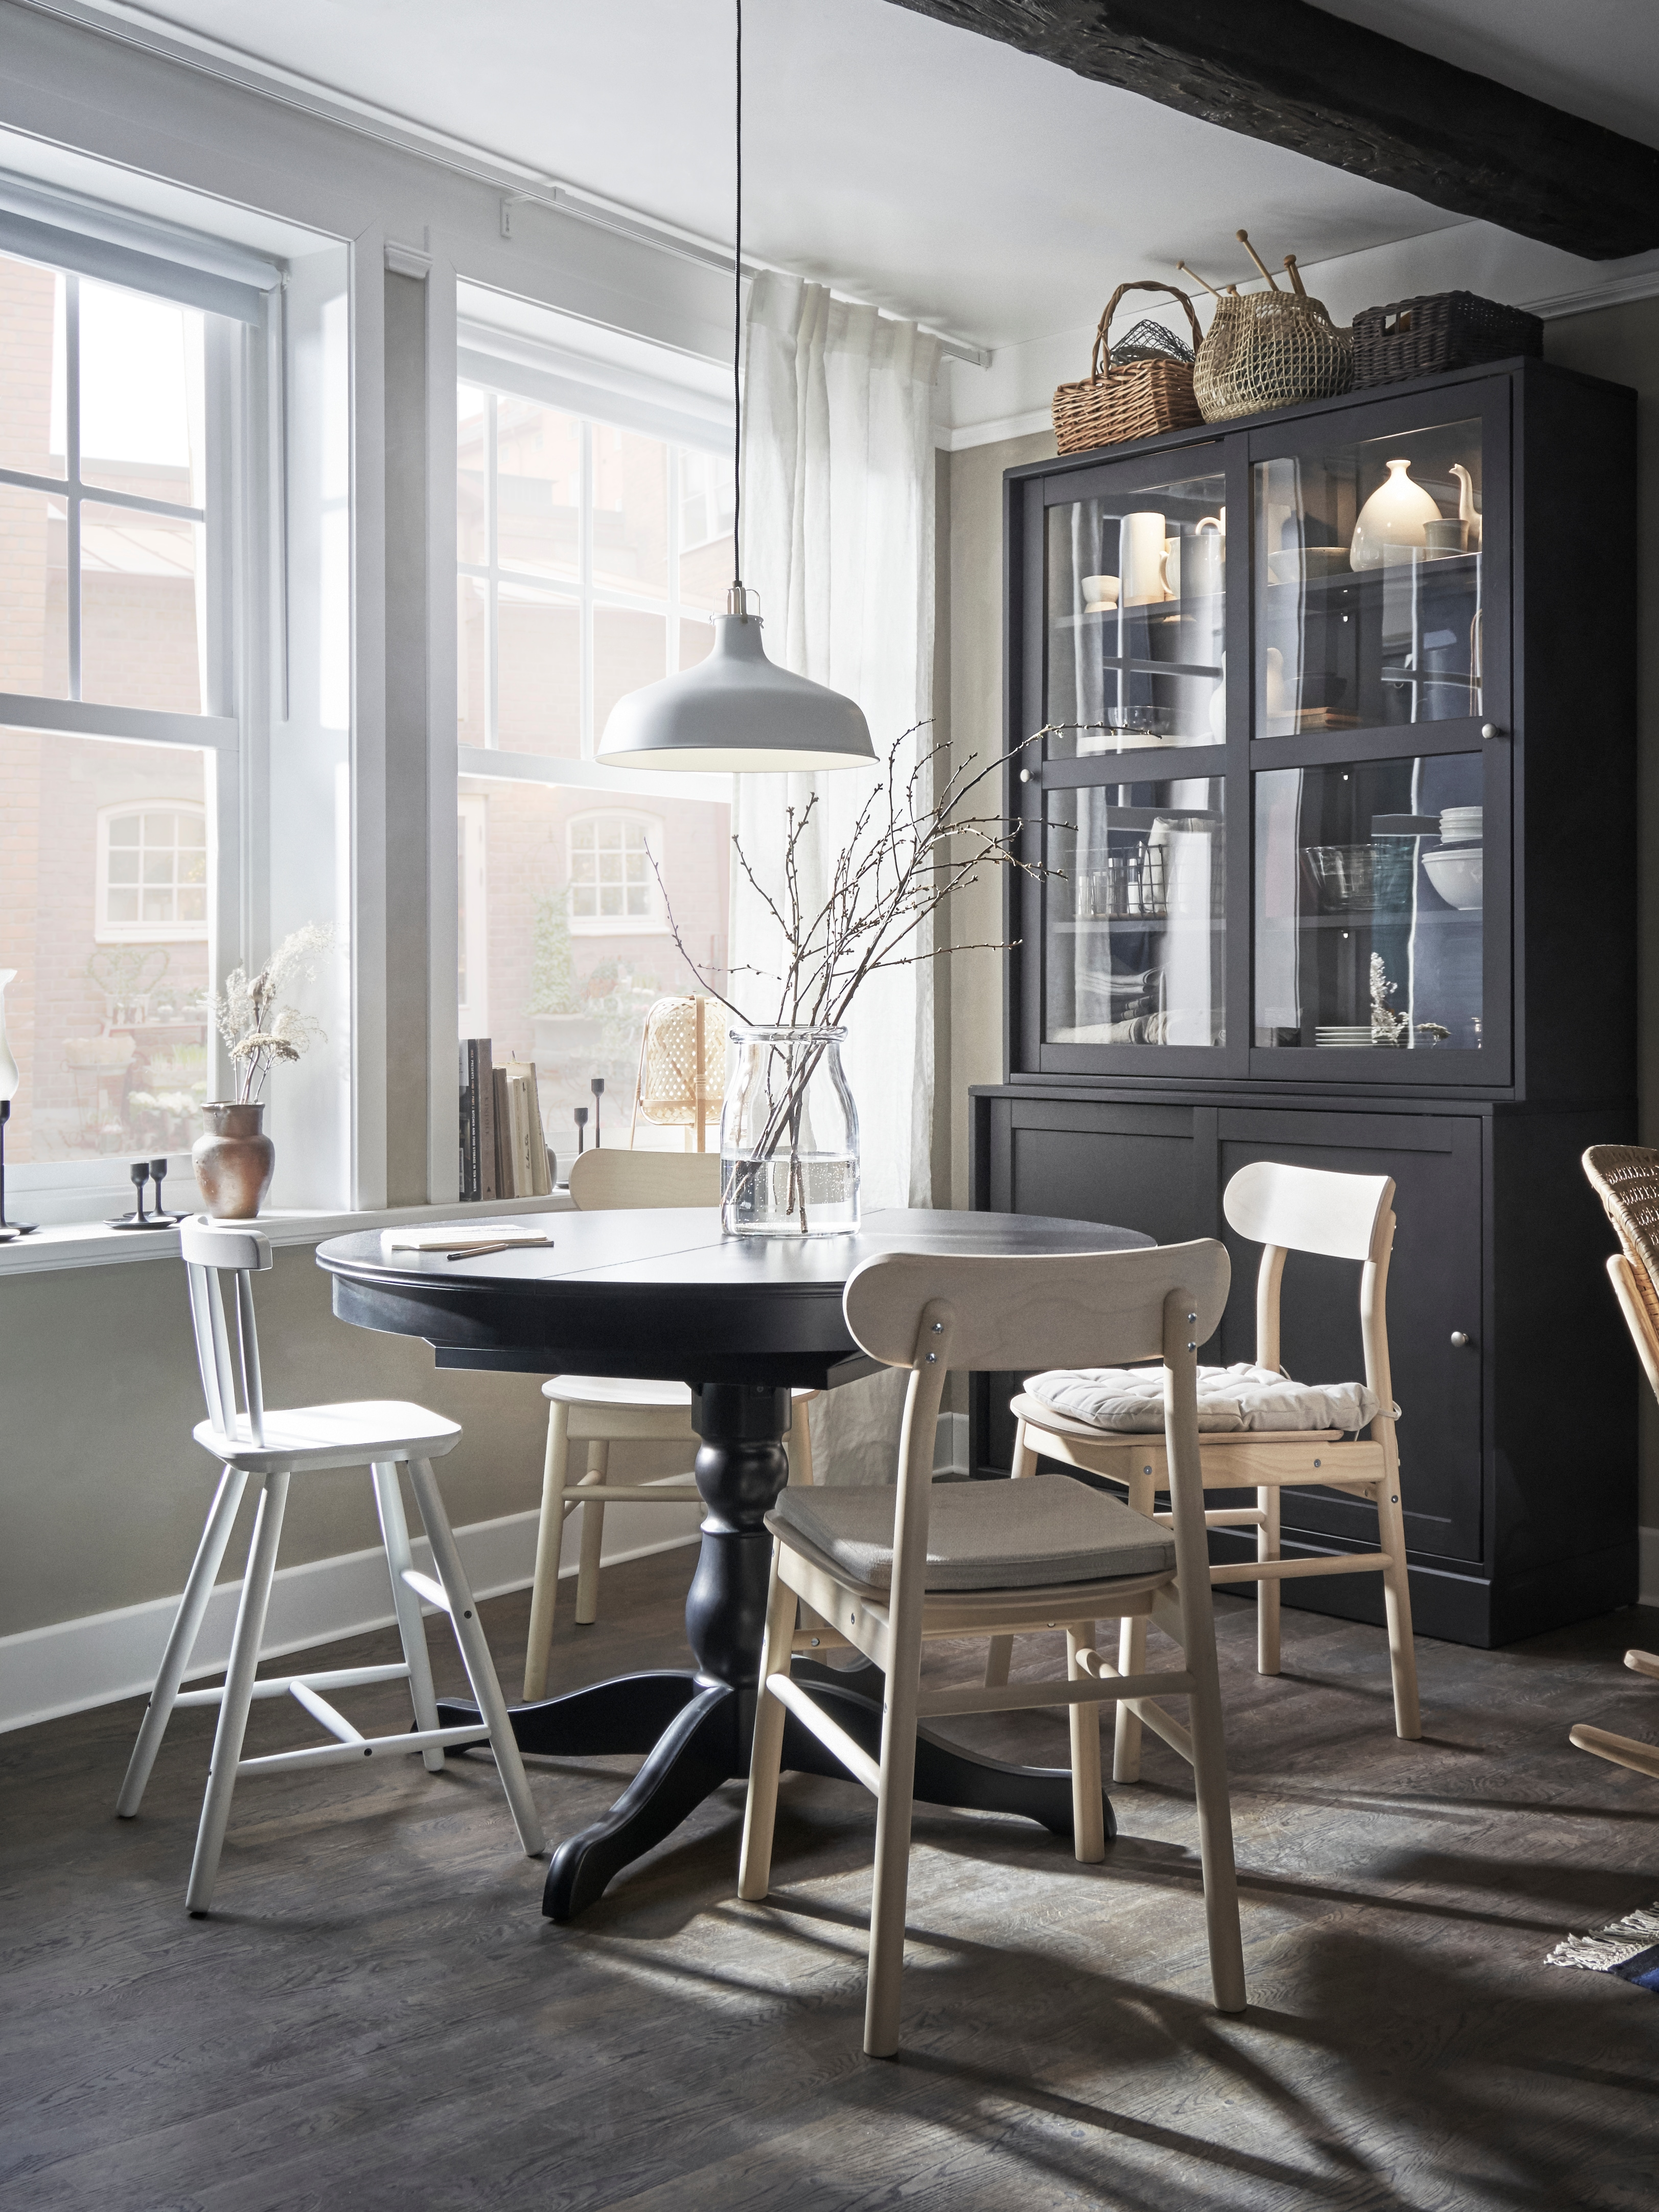 Dining area with extendable table, chairs, junior chair, pendant lamp, vase, storage baskets, storage unit with glass doors.